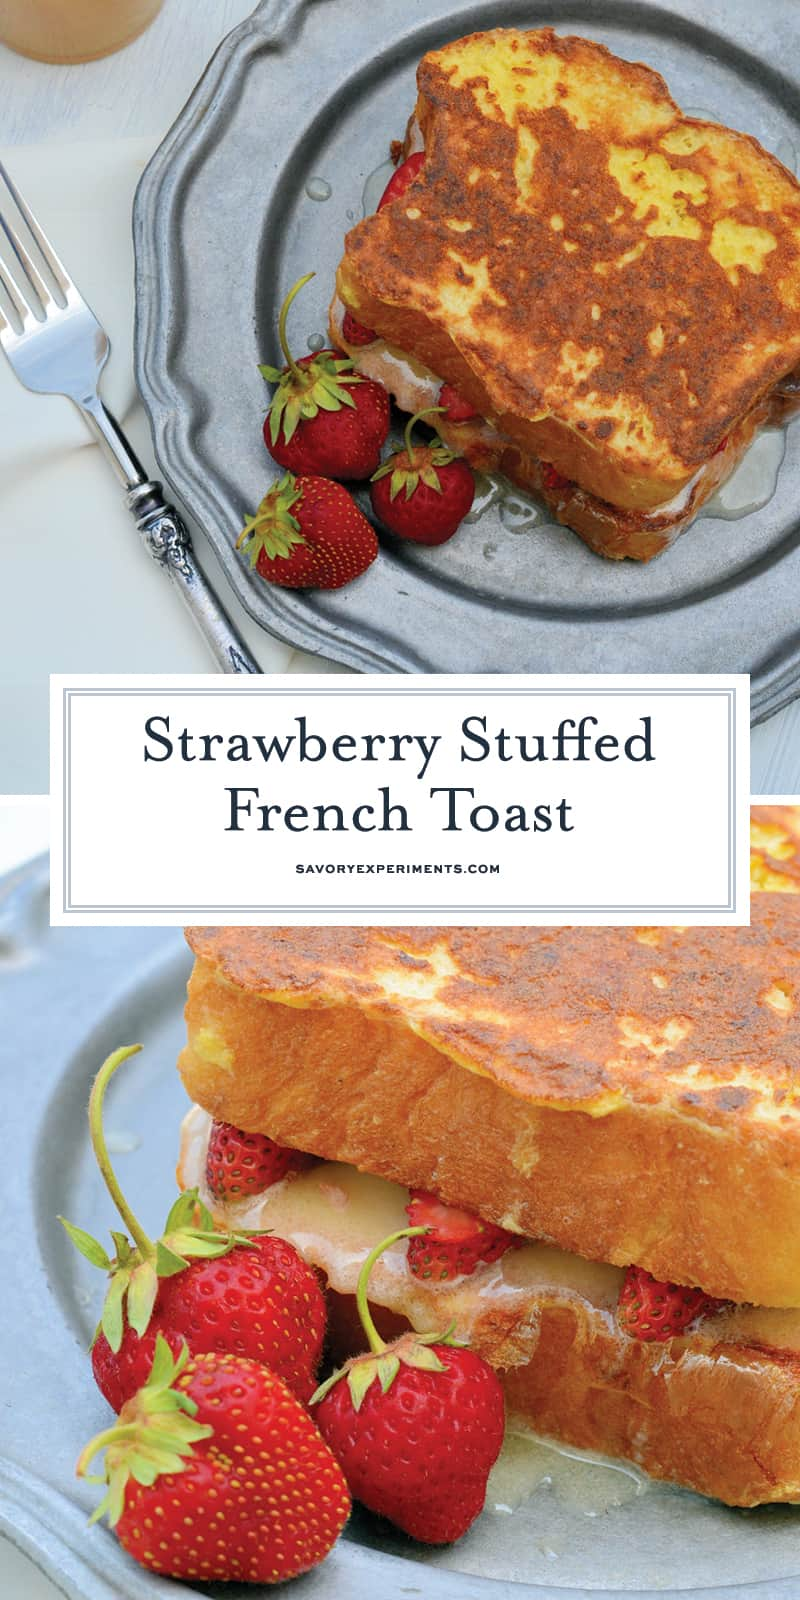 Strawberry Stuffed French Toast is made with mascarpone, Dutch honey syrup, fresh strawberries, and buttery brioche, pound cake, or angel food, for a perfectly delicious dish to enjoy for breakfast! #stuffedfrenchtoast www.savoryexperiments.com